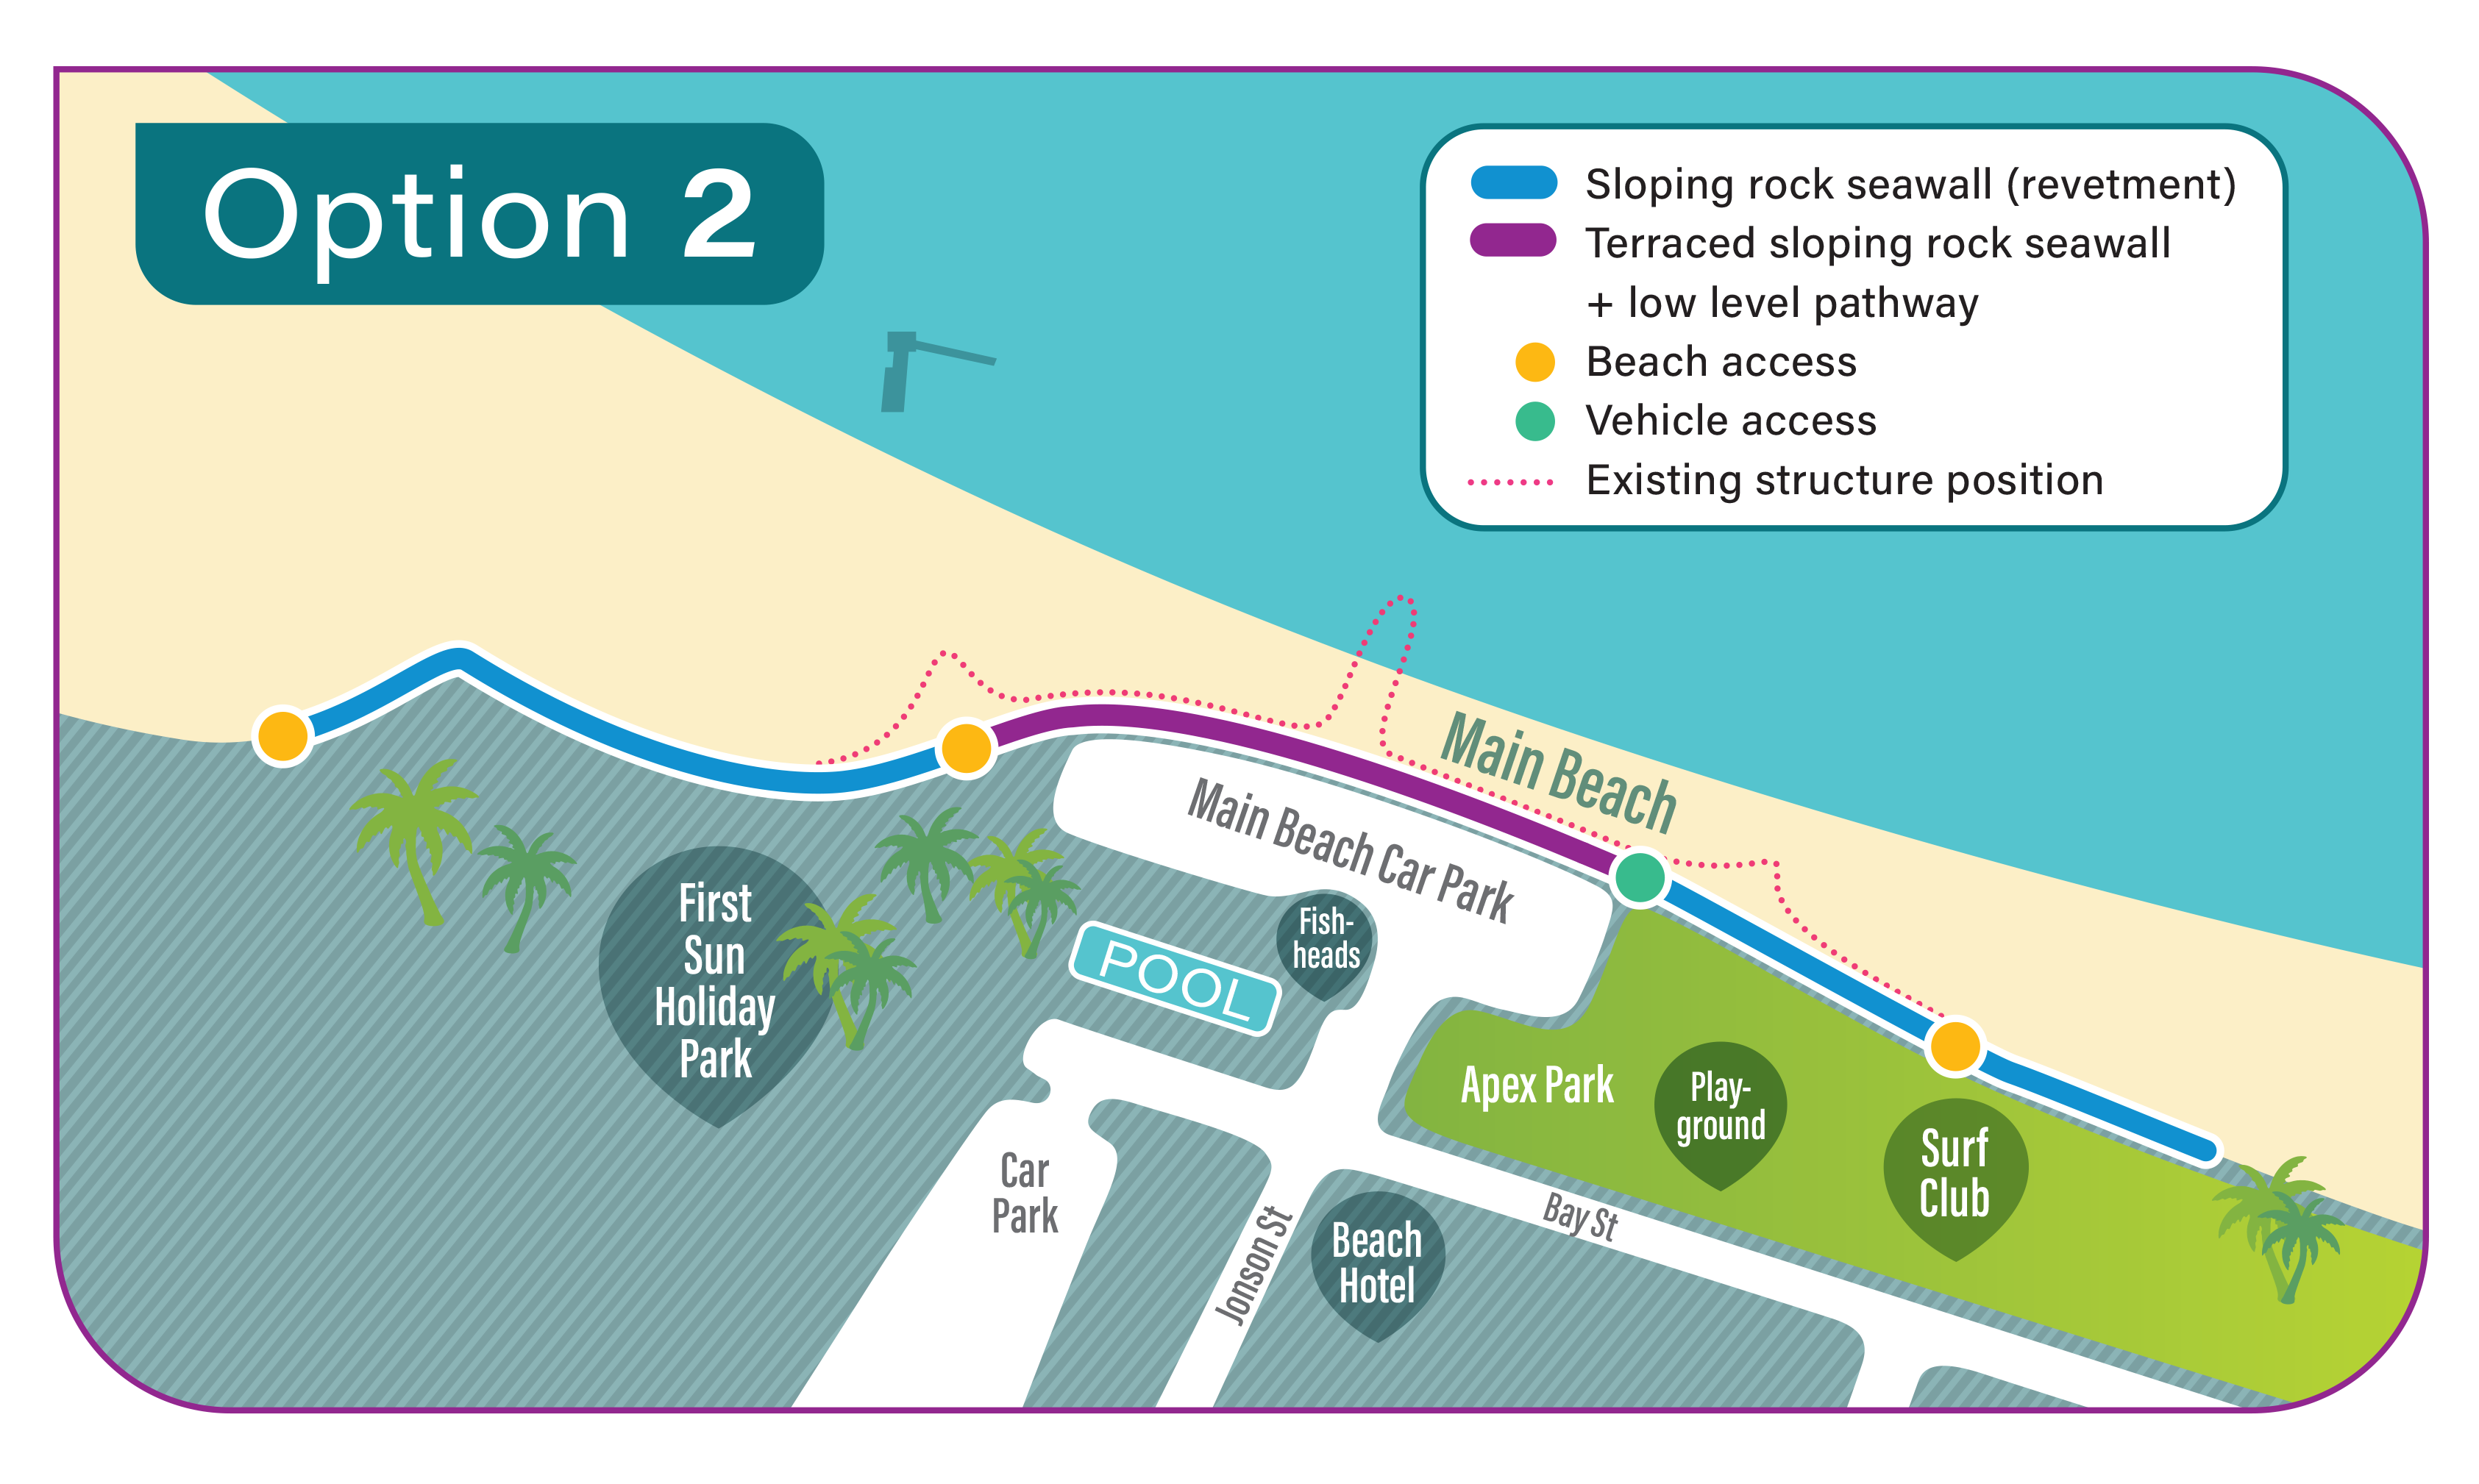 • Option 2 includes sloping rock seawall (revetment), terraced sloping rock seawall plus low level pathway, beach access, vehicle access, existing structure position.